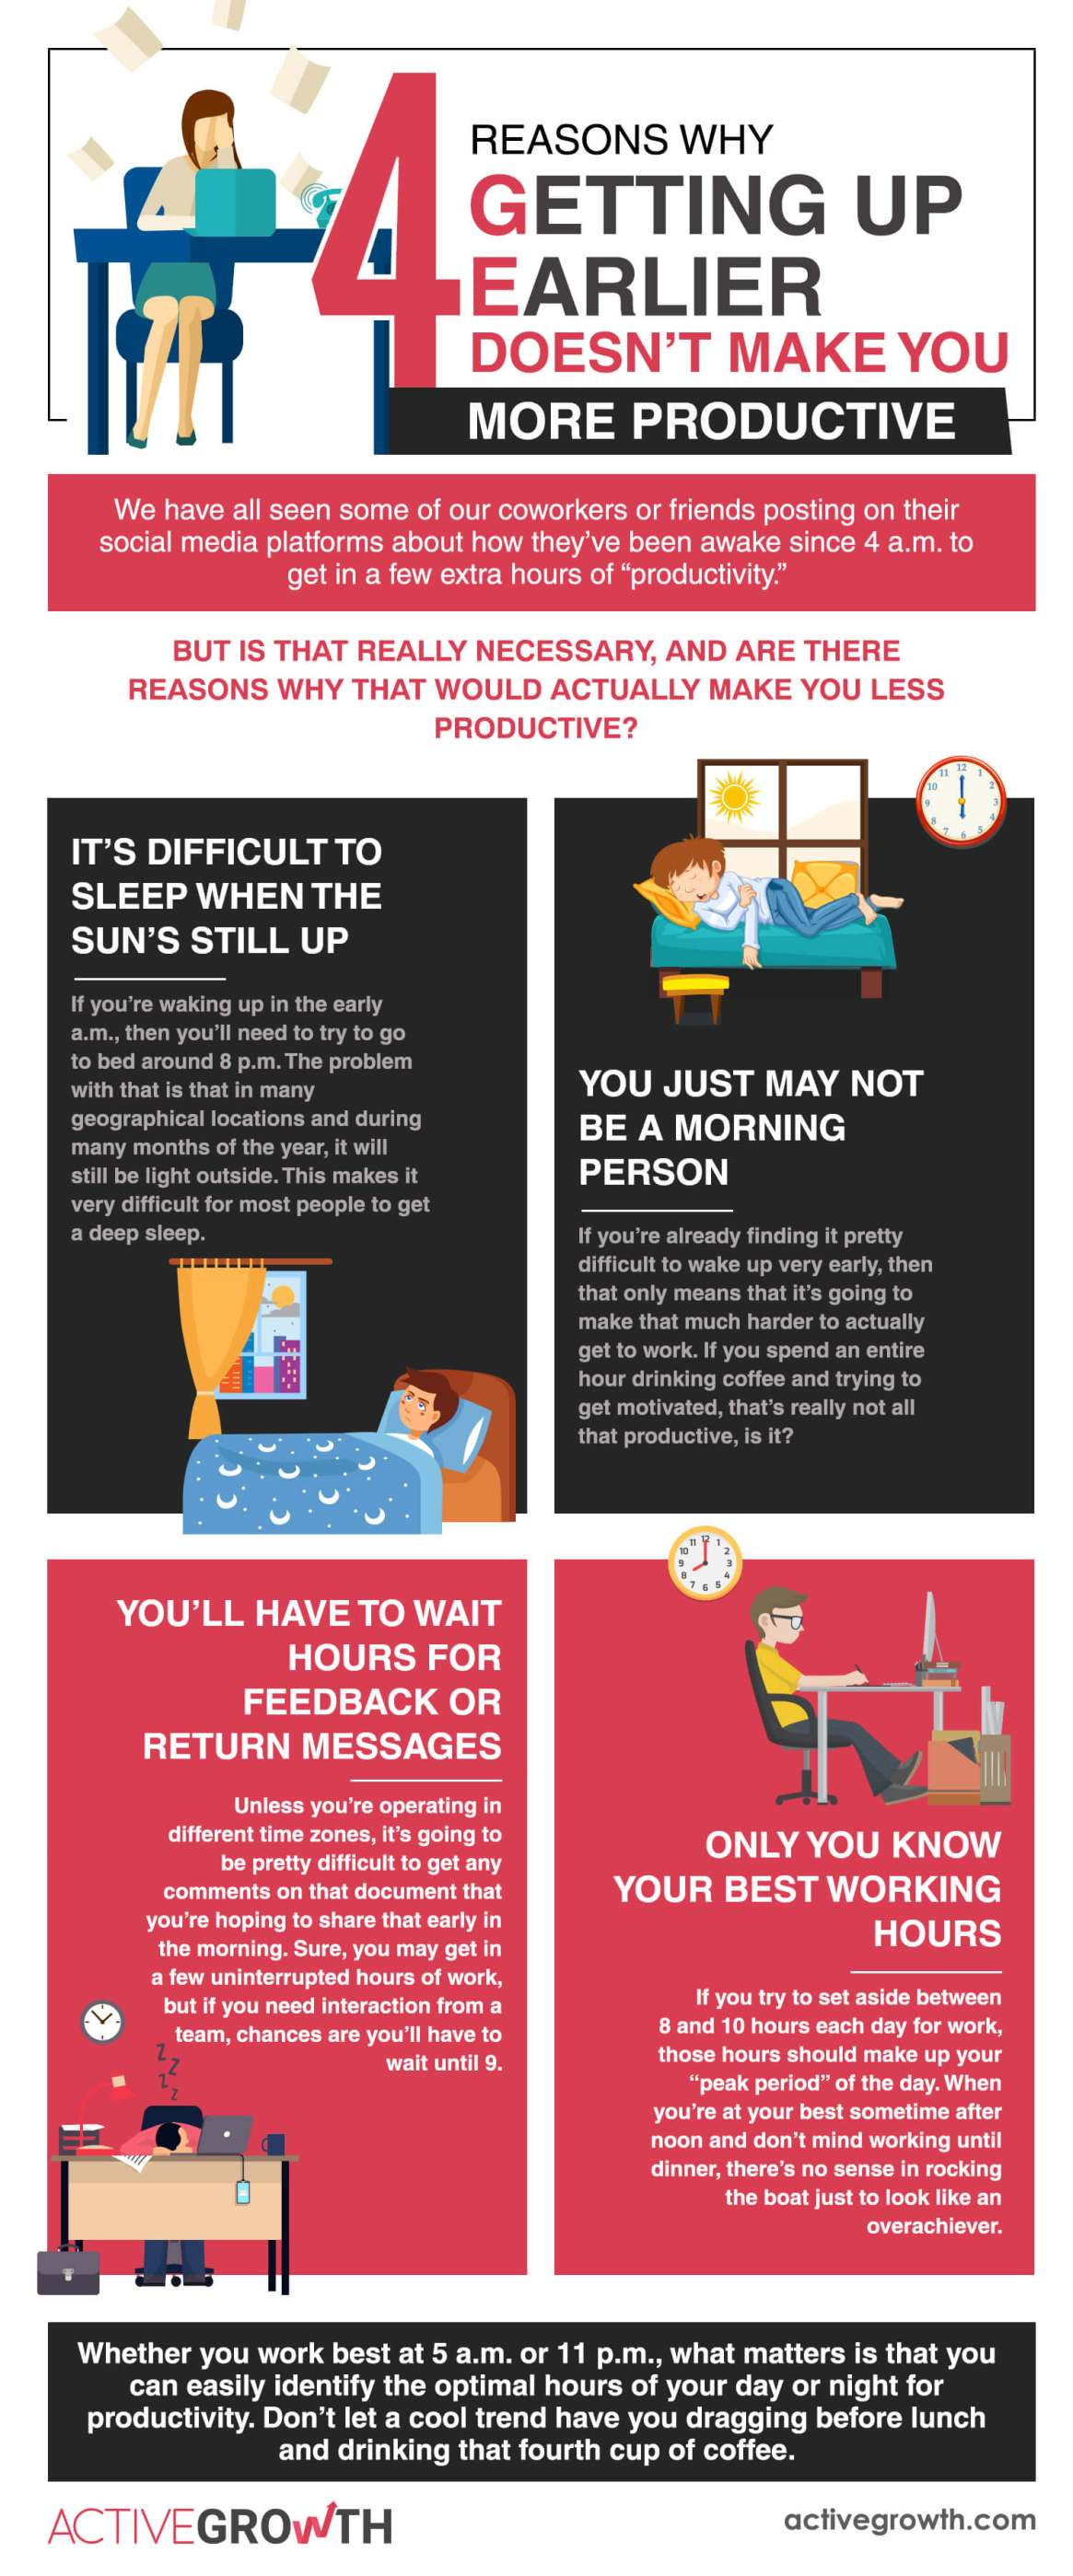 4 Reasons Why Getting Up Earlier Doesn't Make You More Productive